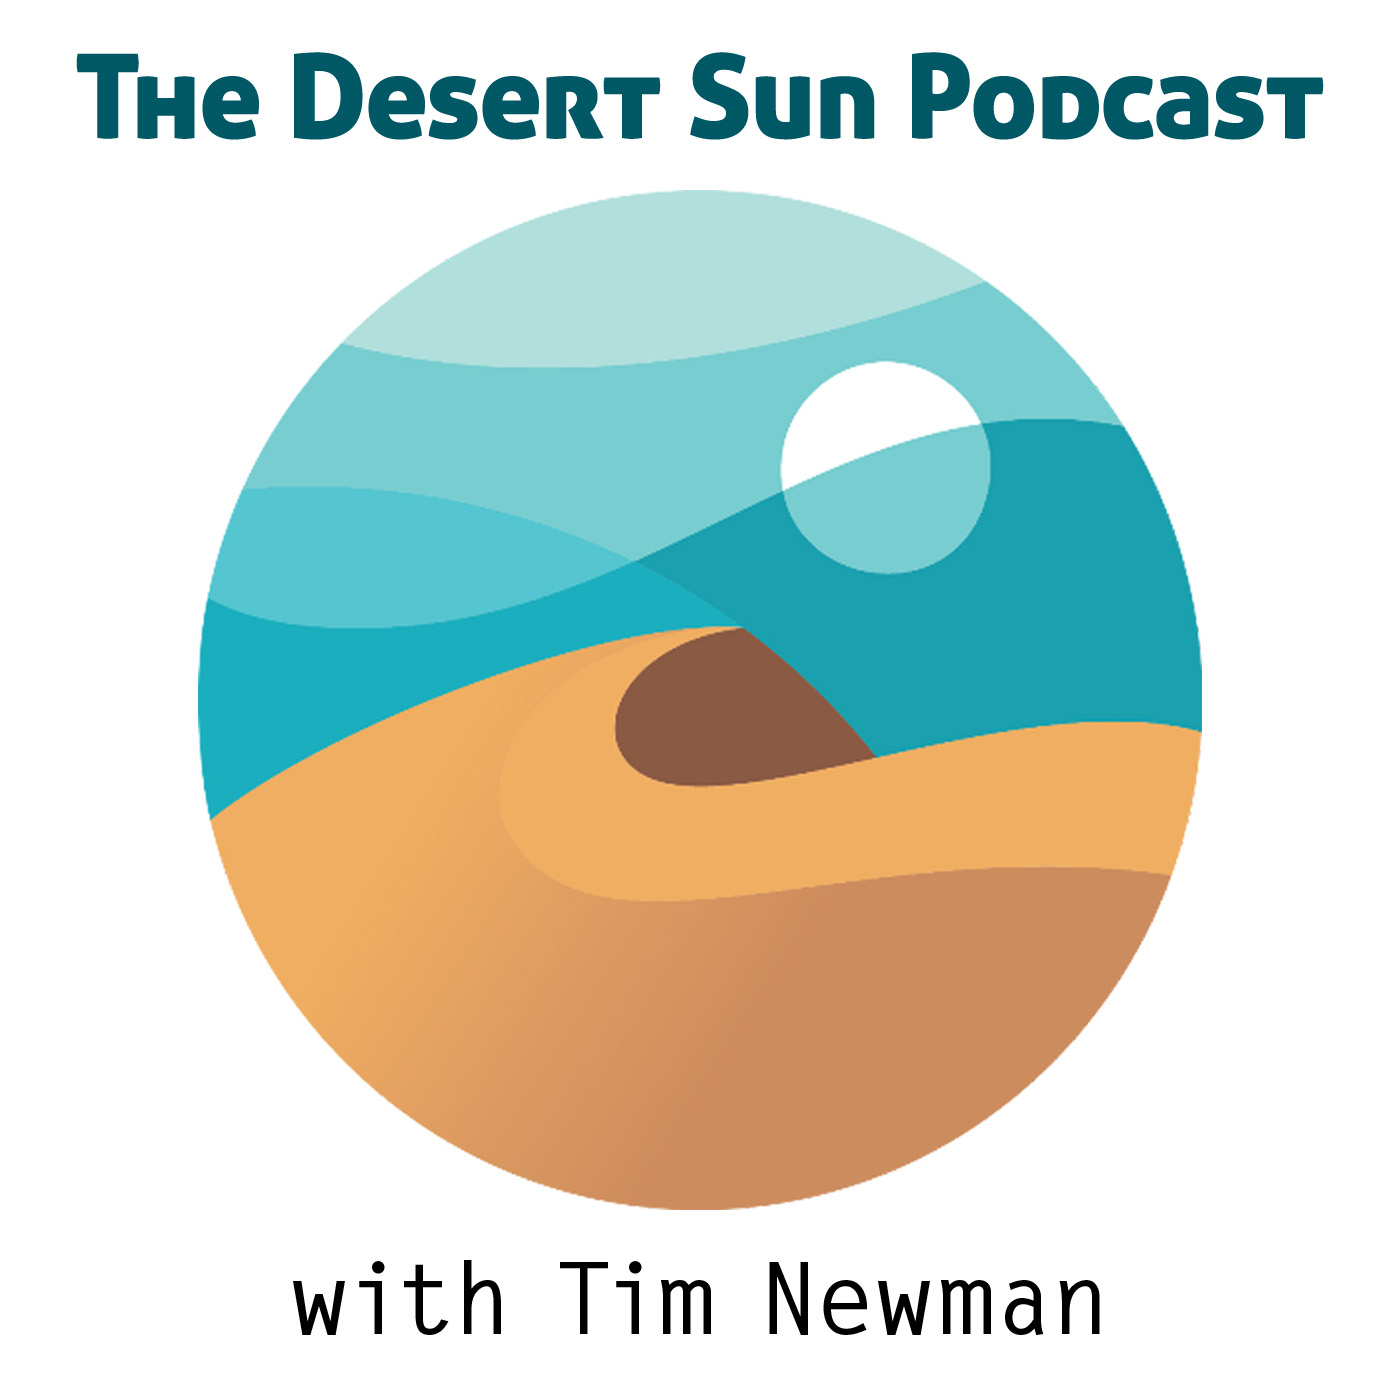 The Desert Sun Podcast